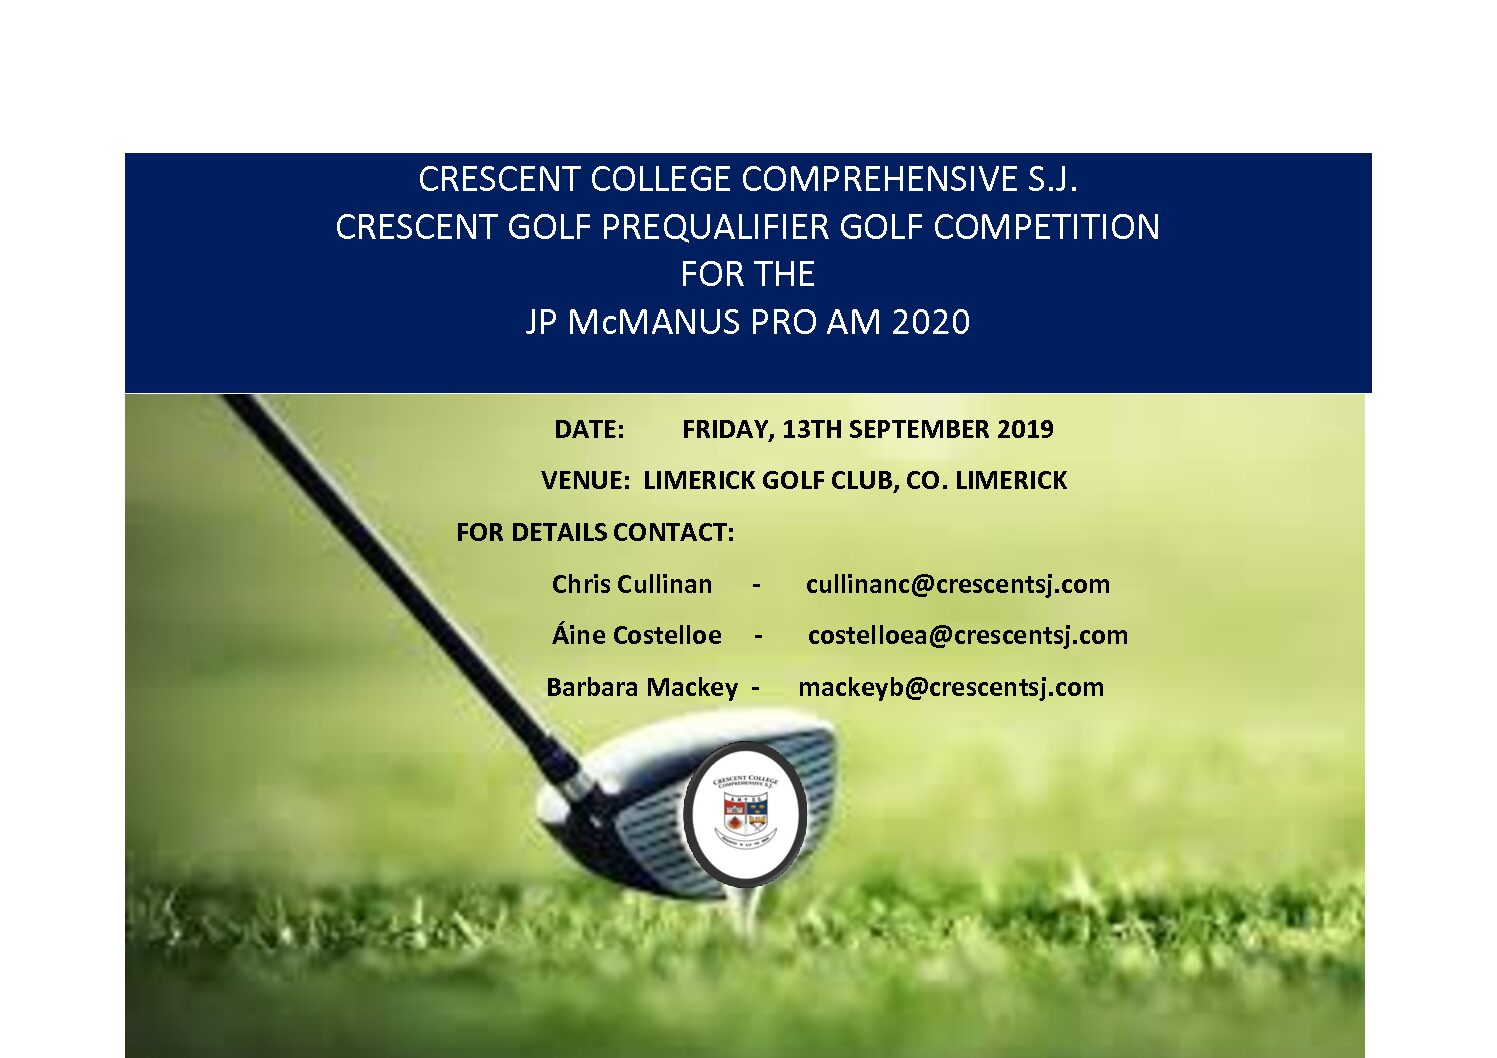 CRESCENT GOLF PREQUALIFIER GOLF COMPETITION FOR THE JP McMANUS PRO AM 2020